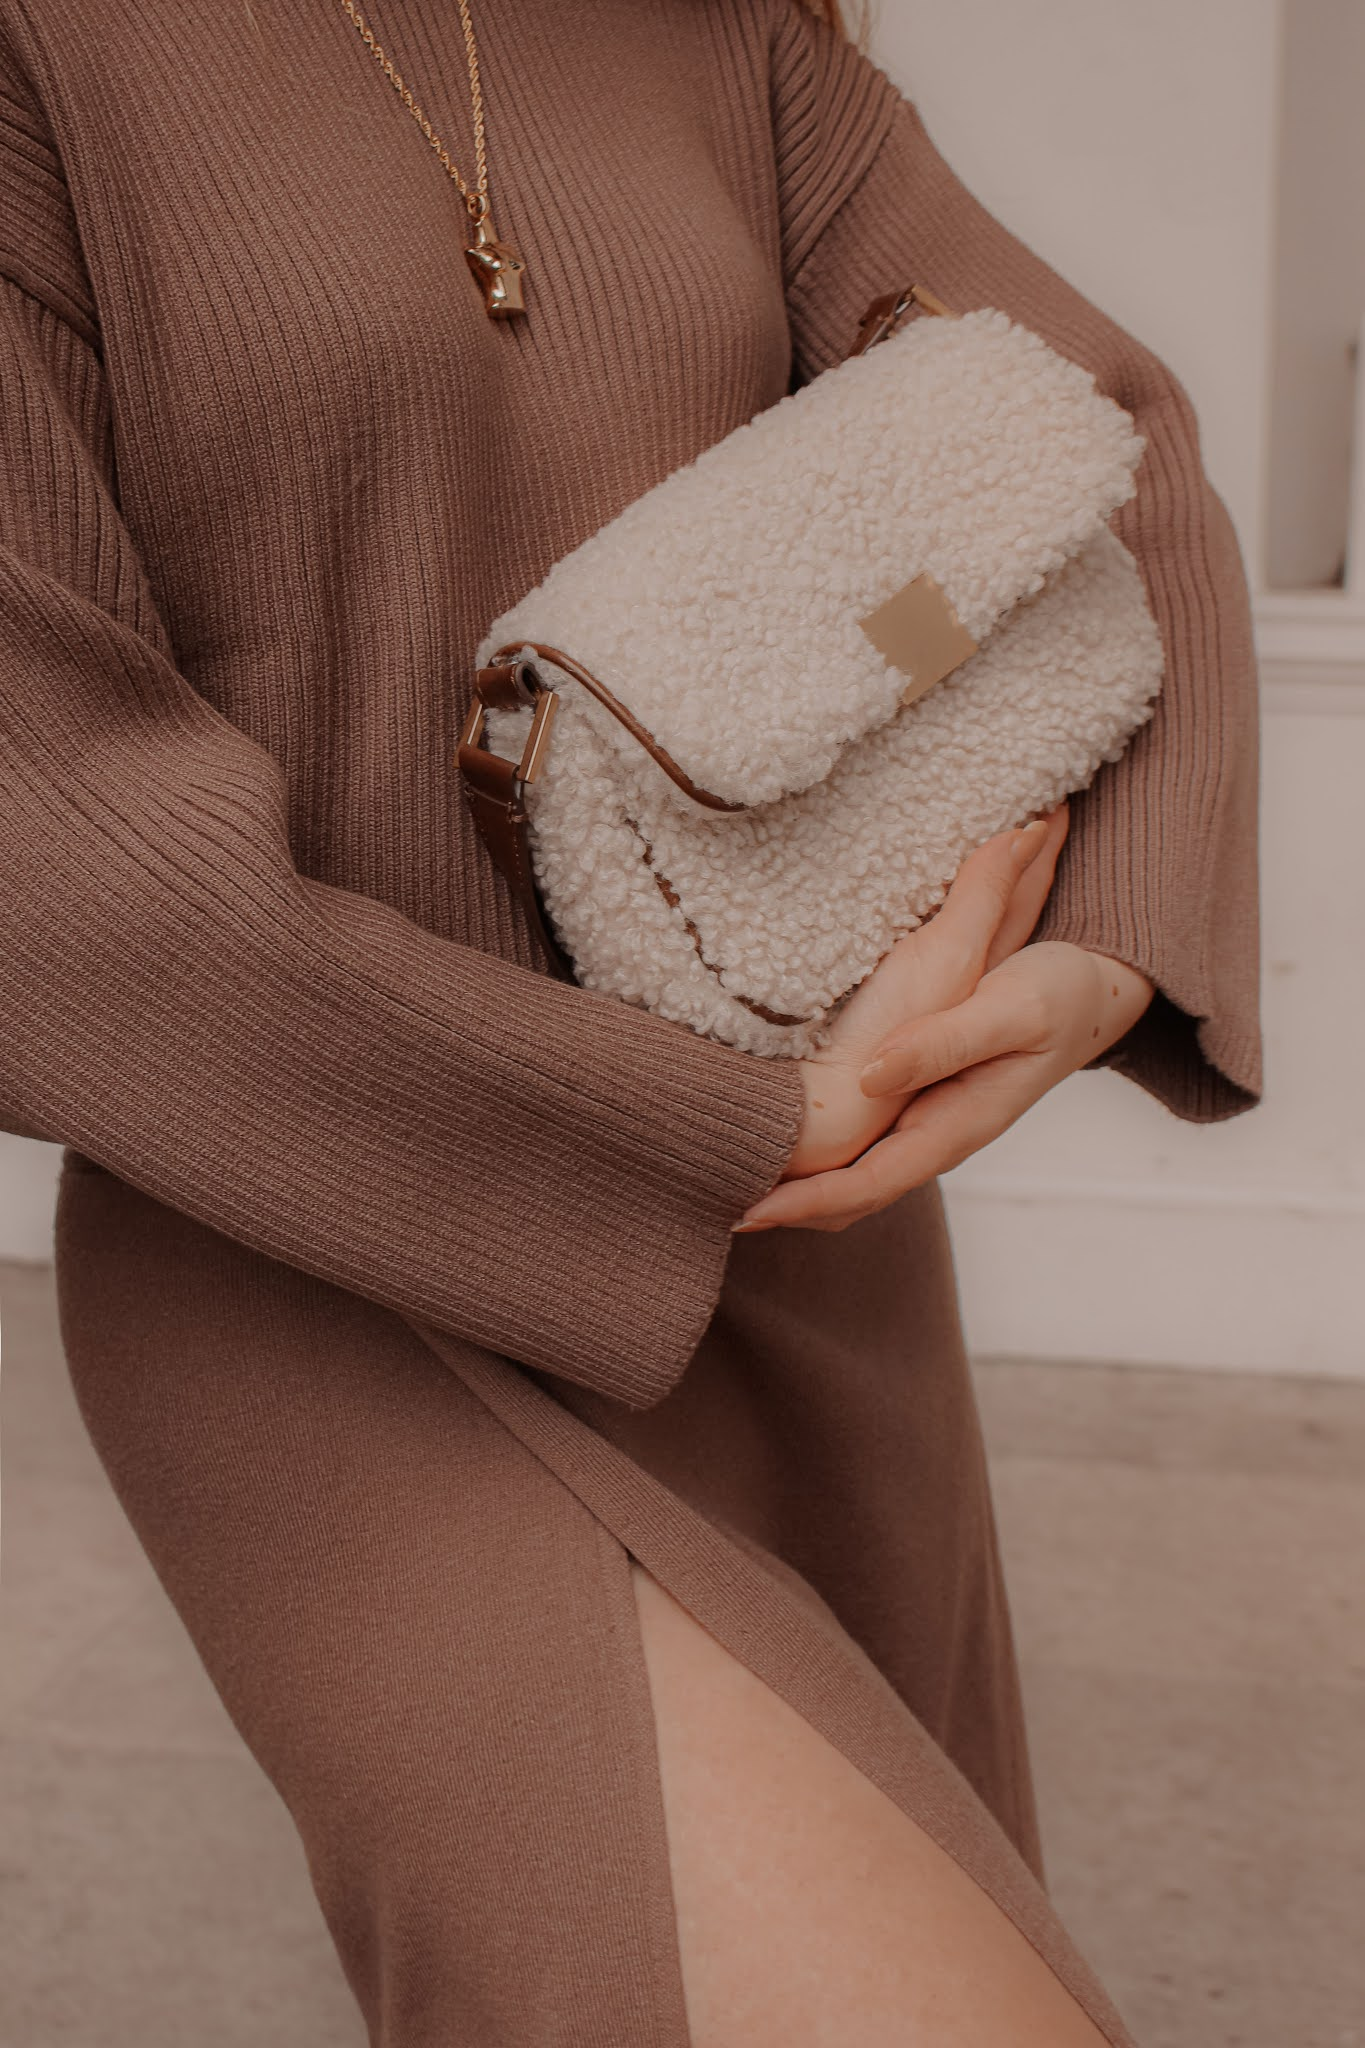 Zara sheepskin baguette shoulder bag